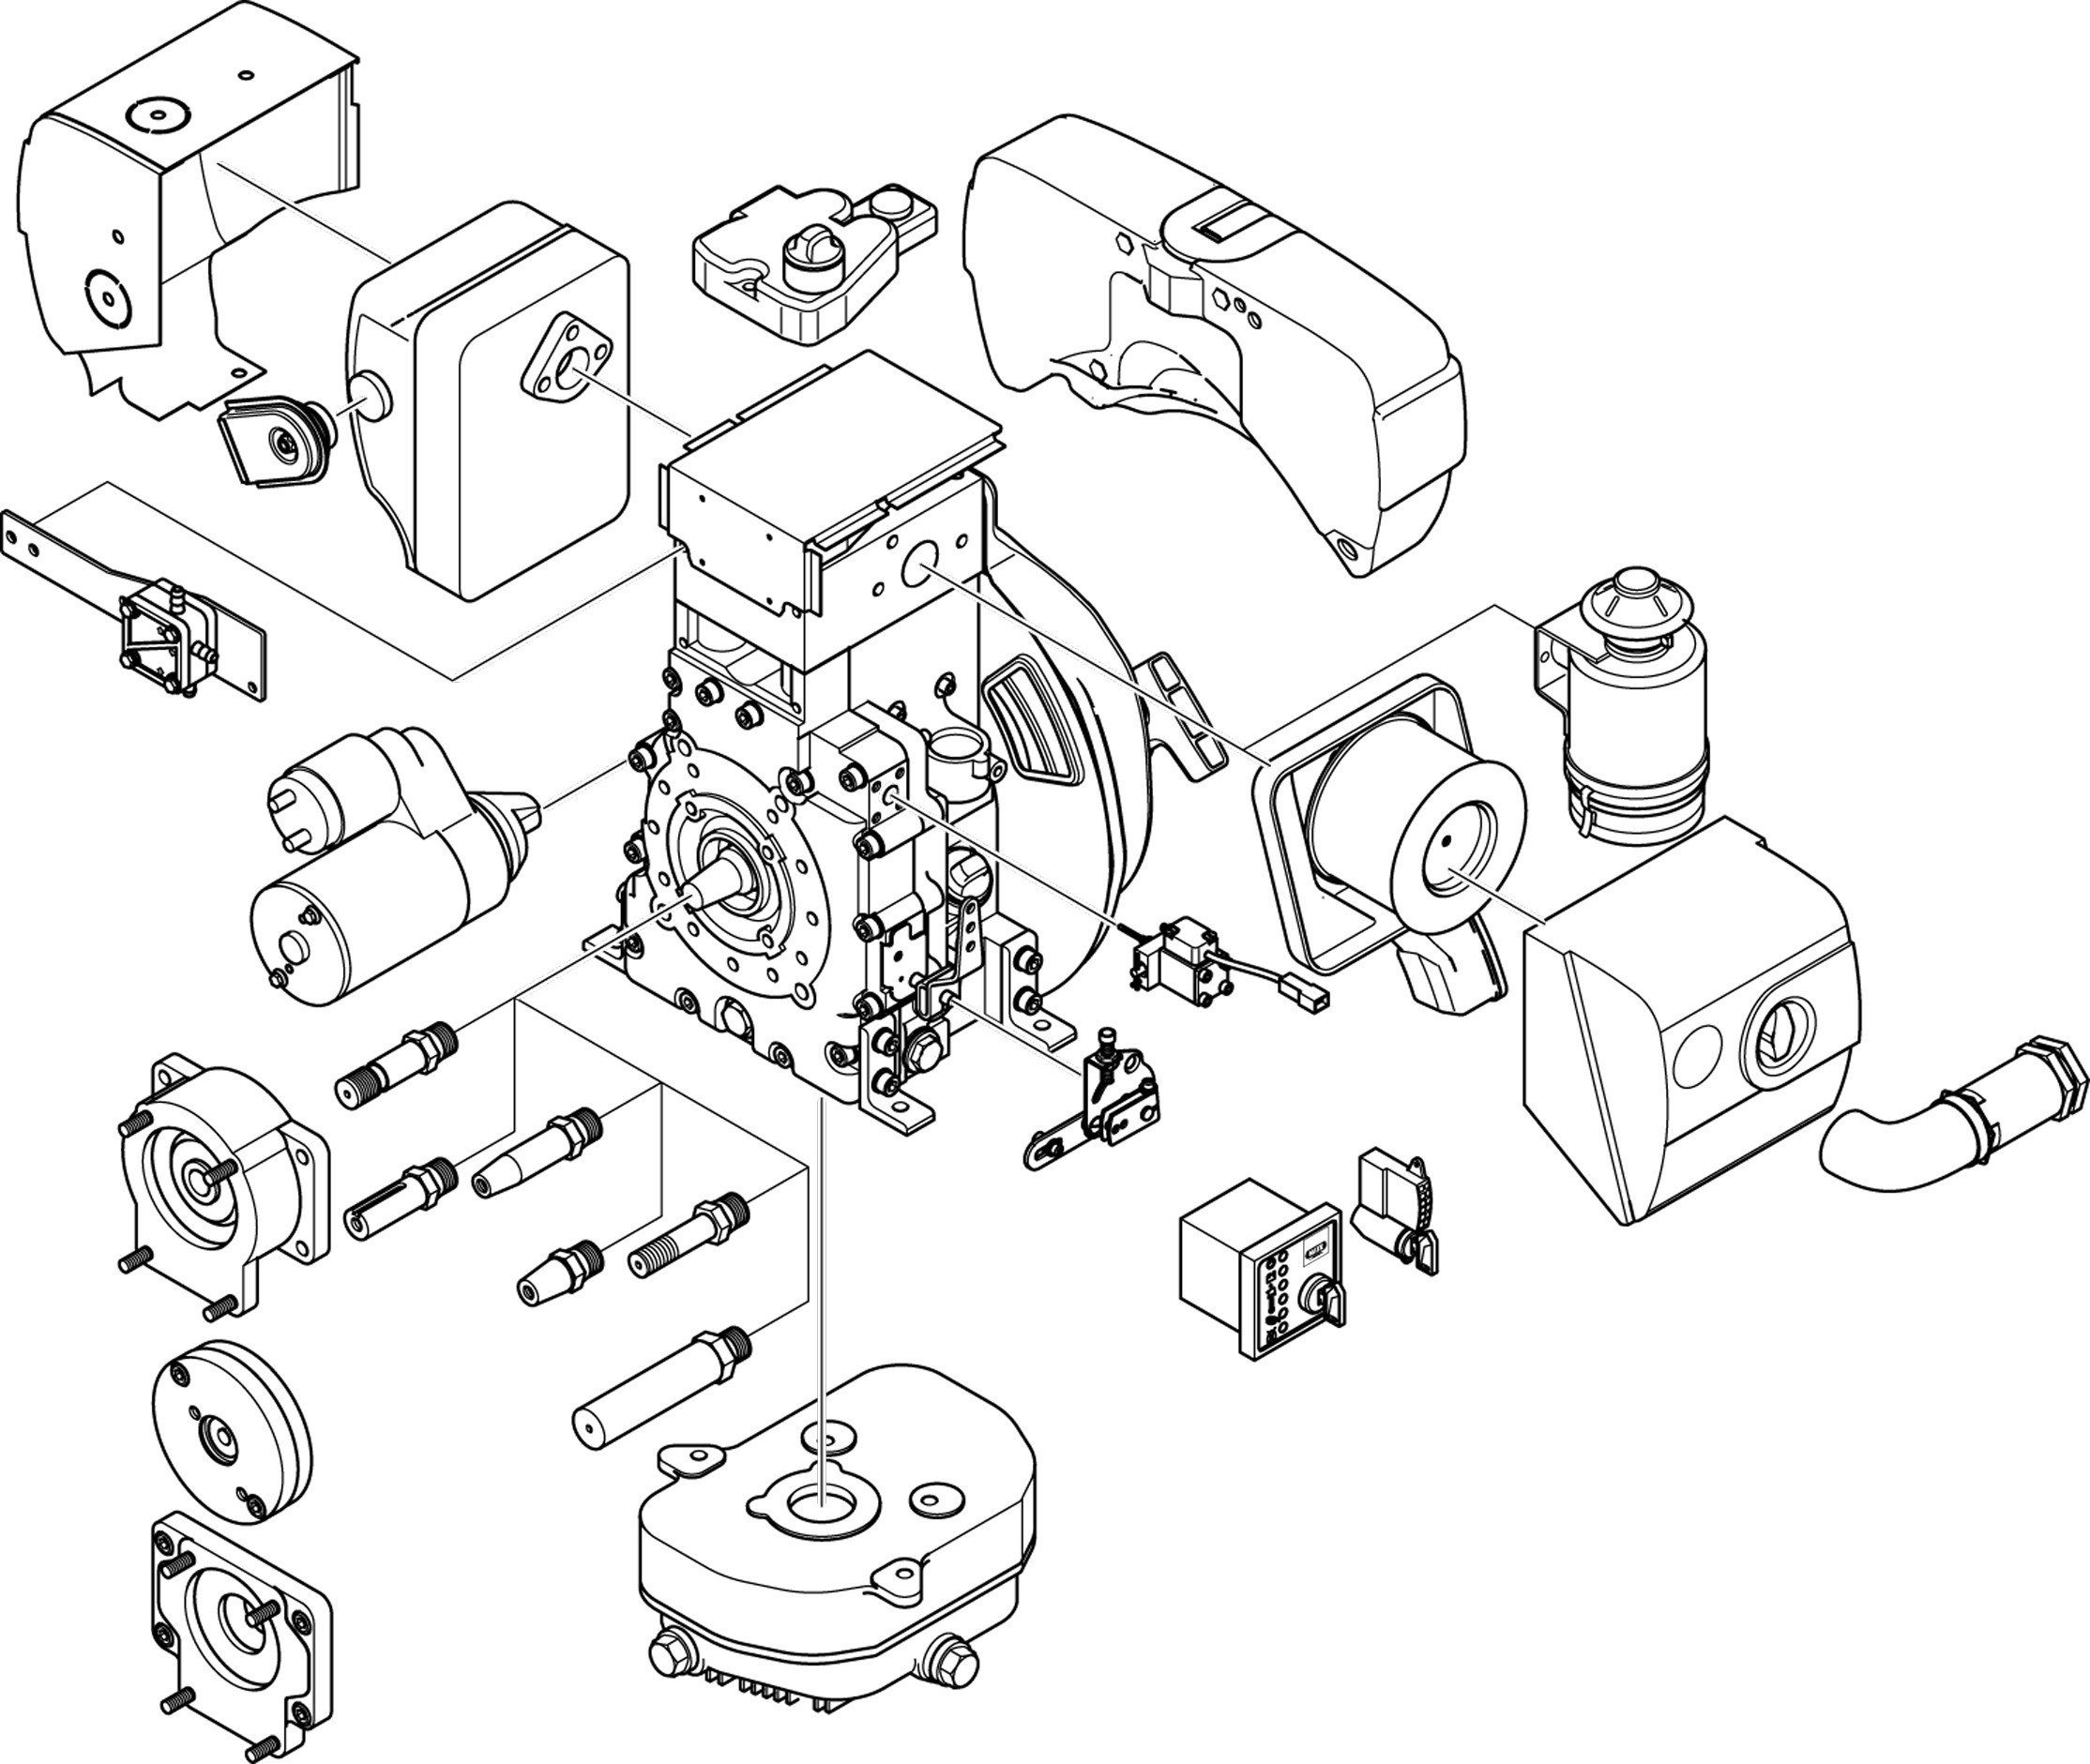 Kubota engine parts diagram hatz diesel engine workshop manual how to amp  manual of kubota engine